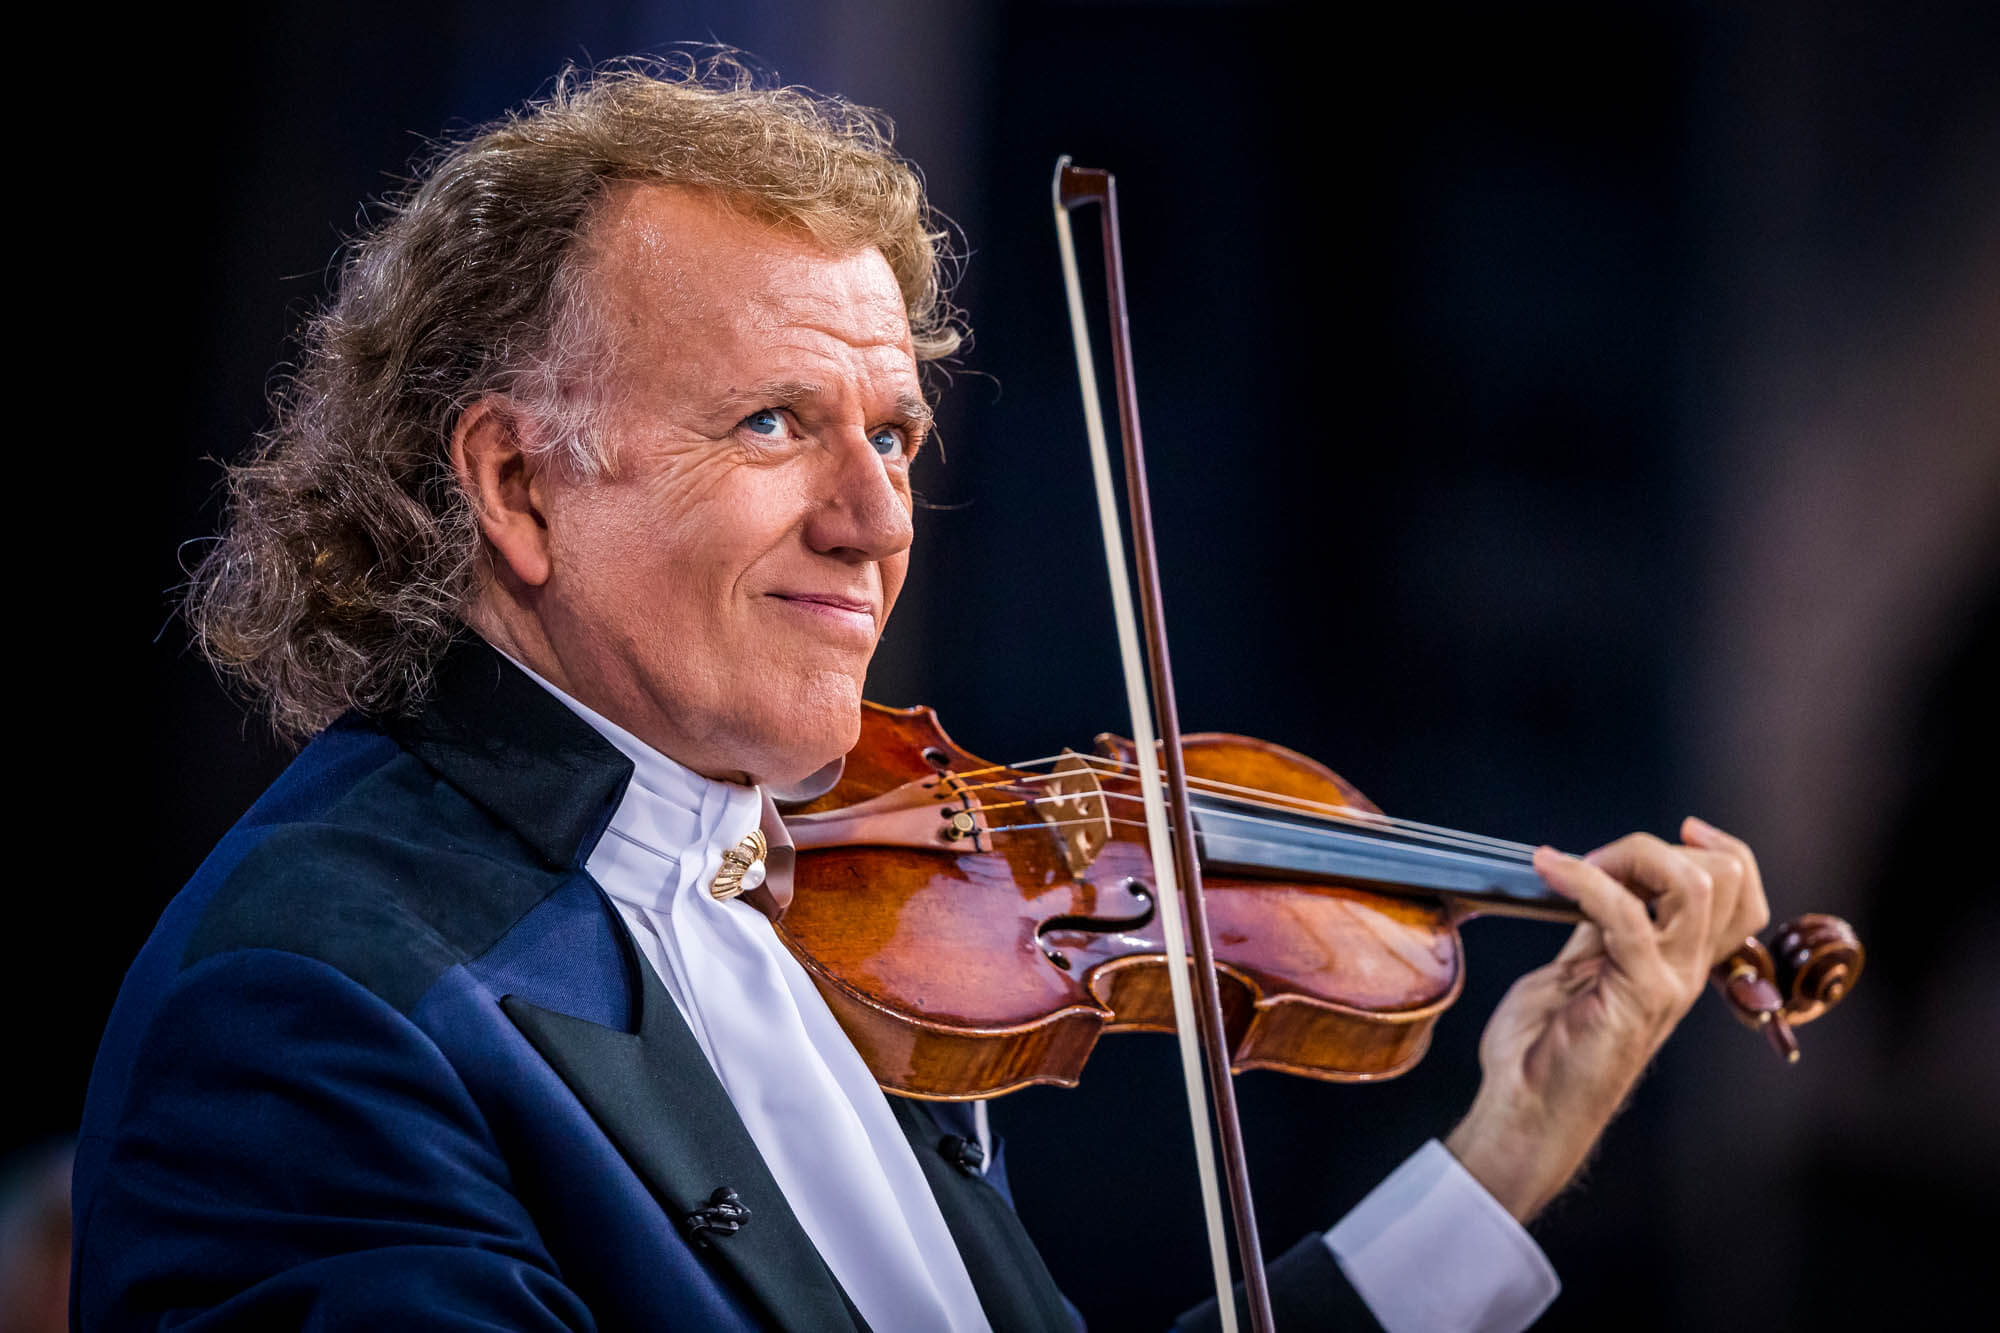 André Rieu's guide to Amsterdam: how to spend the perfect day in the Dutch capital